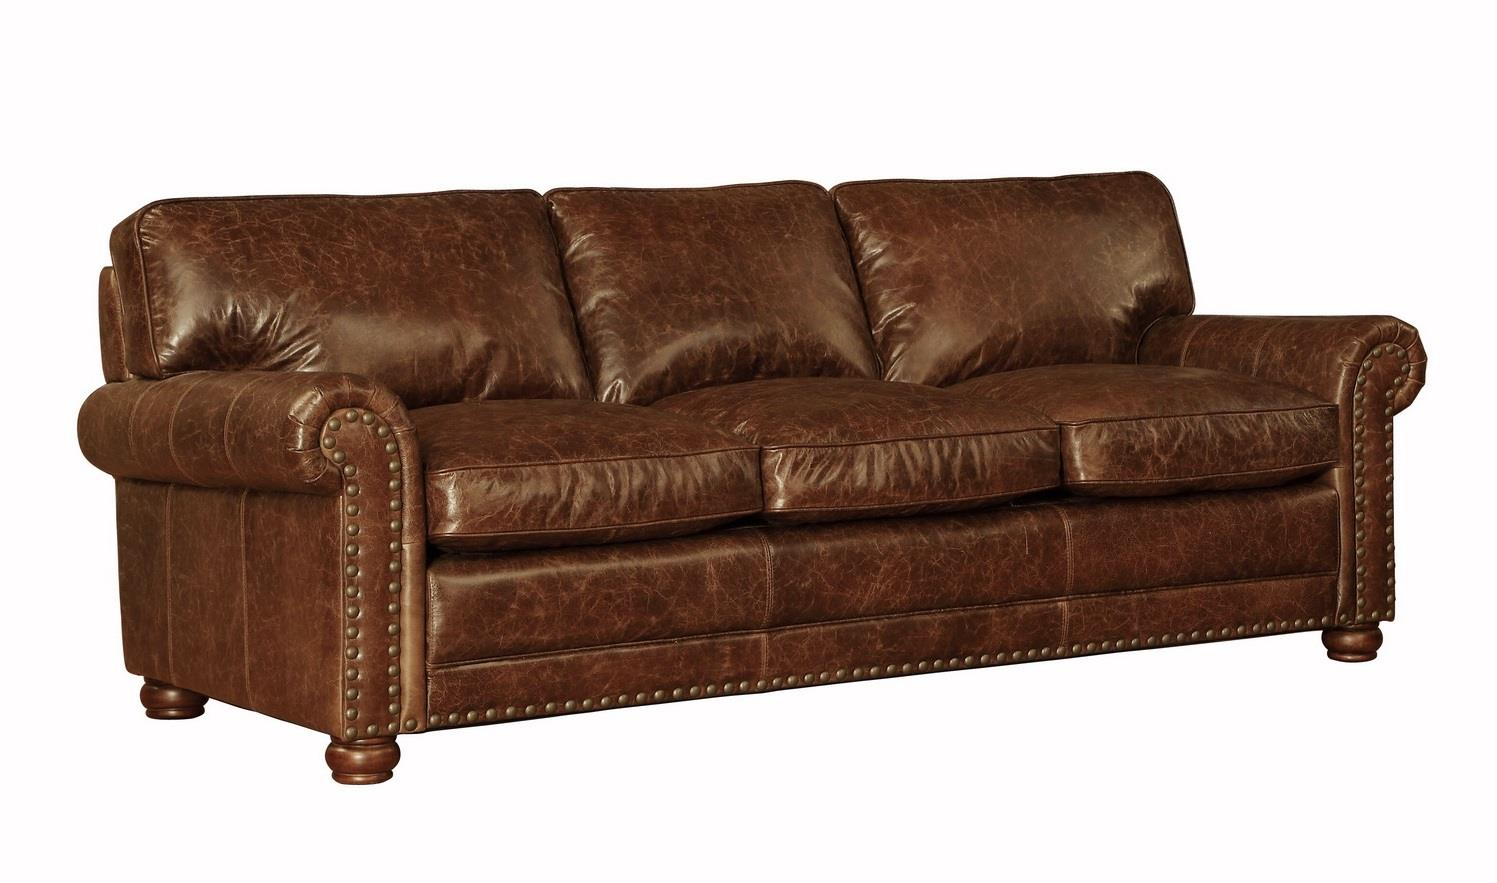 Fabulous Hardwick 1001N Leather Sofa In Cocoa Brompton Sofas And Ncnpc Chair Design For Home Ncnpcorg